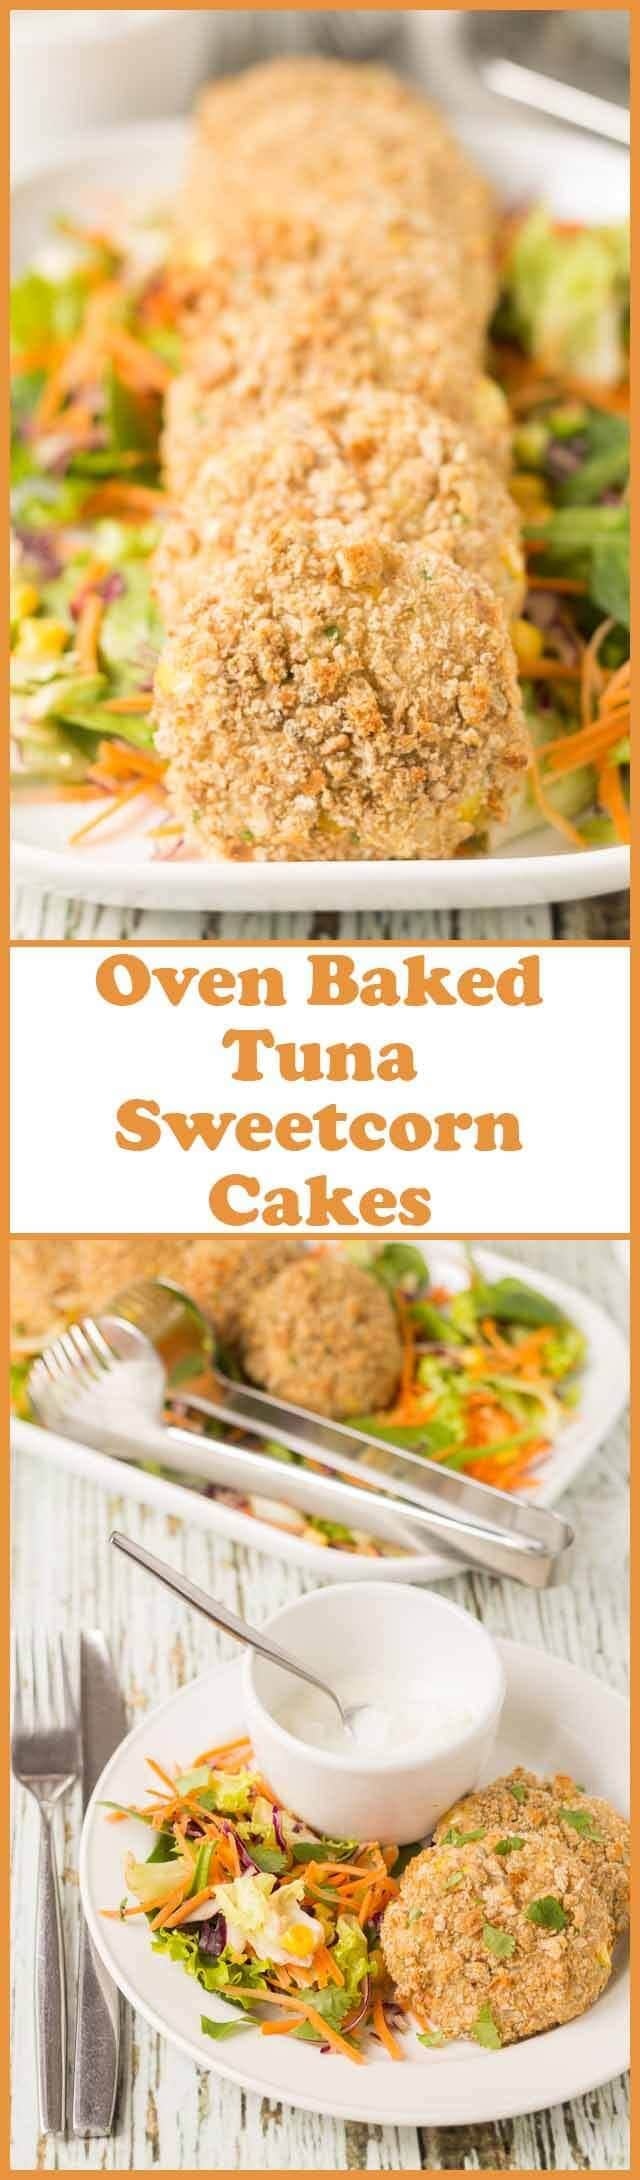 These oven baked tuna sweetcorn cakes are a great way of using up leftover potatoes to create an amazingly simple and filling quick healthy meal. Being oven baked instead of fried these delicious healthy cakes are lower in calories and fat too!